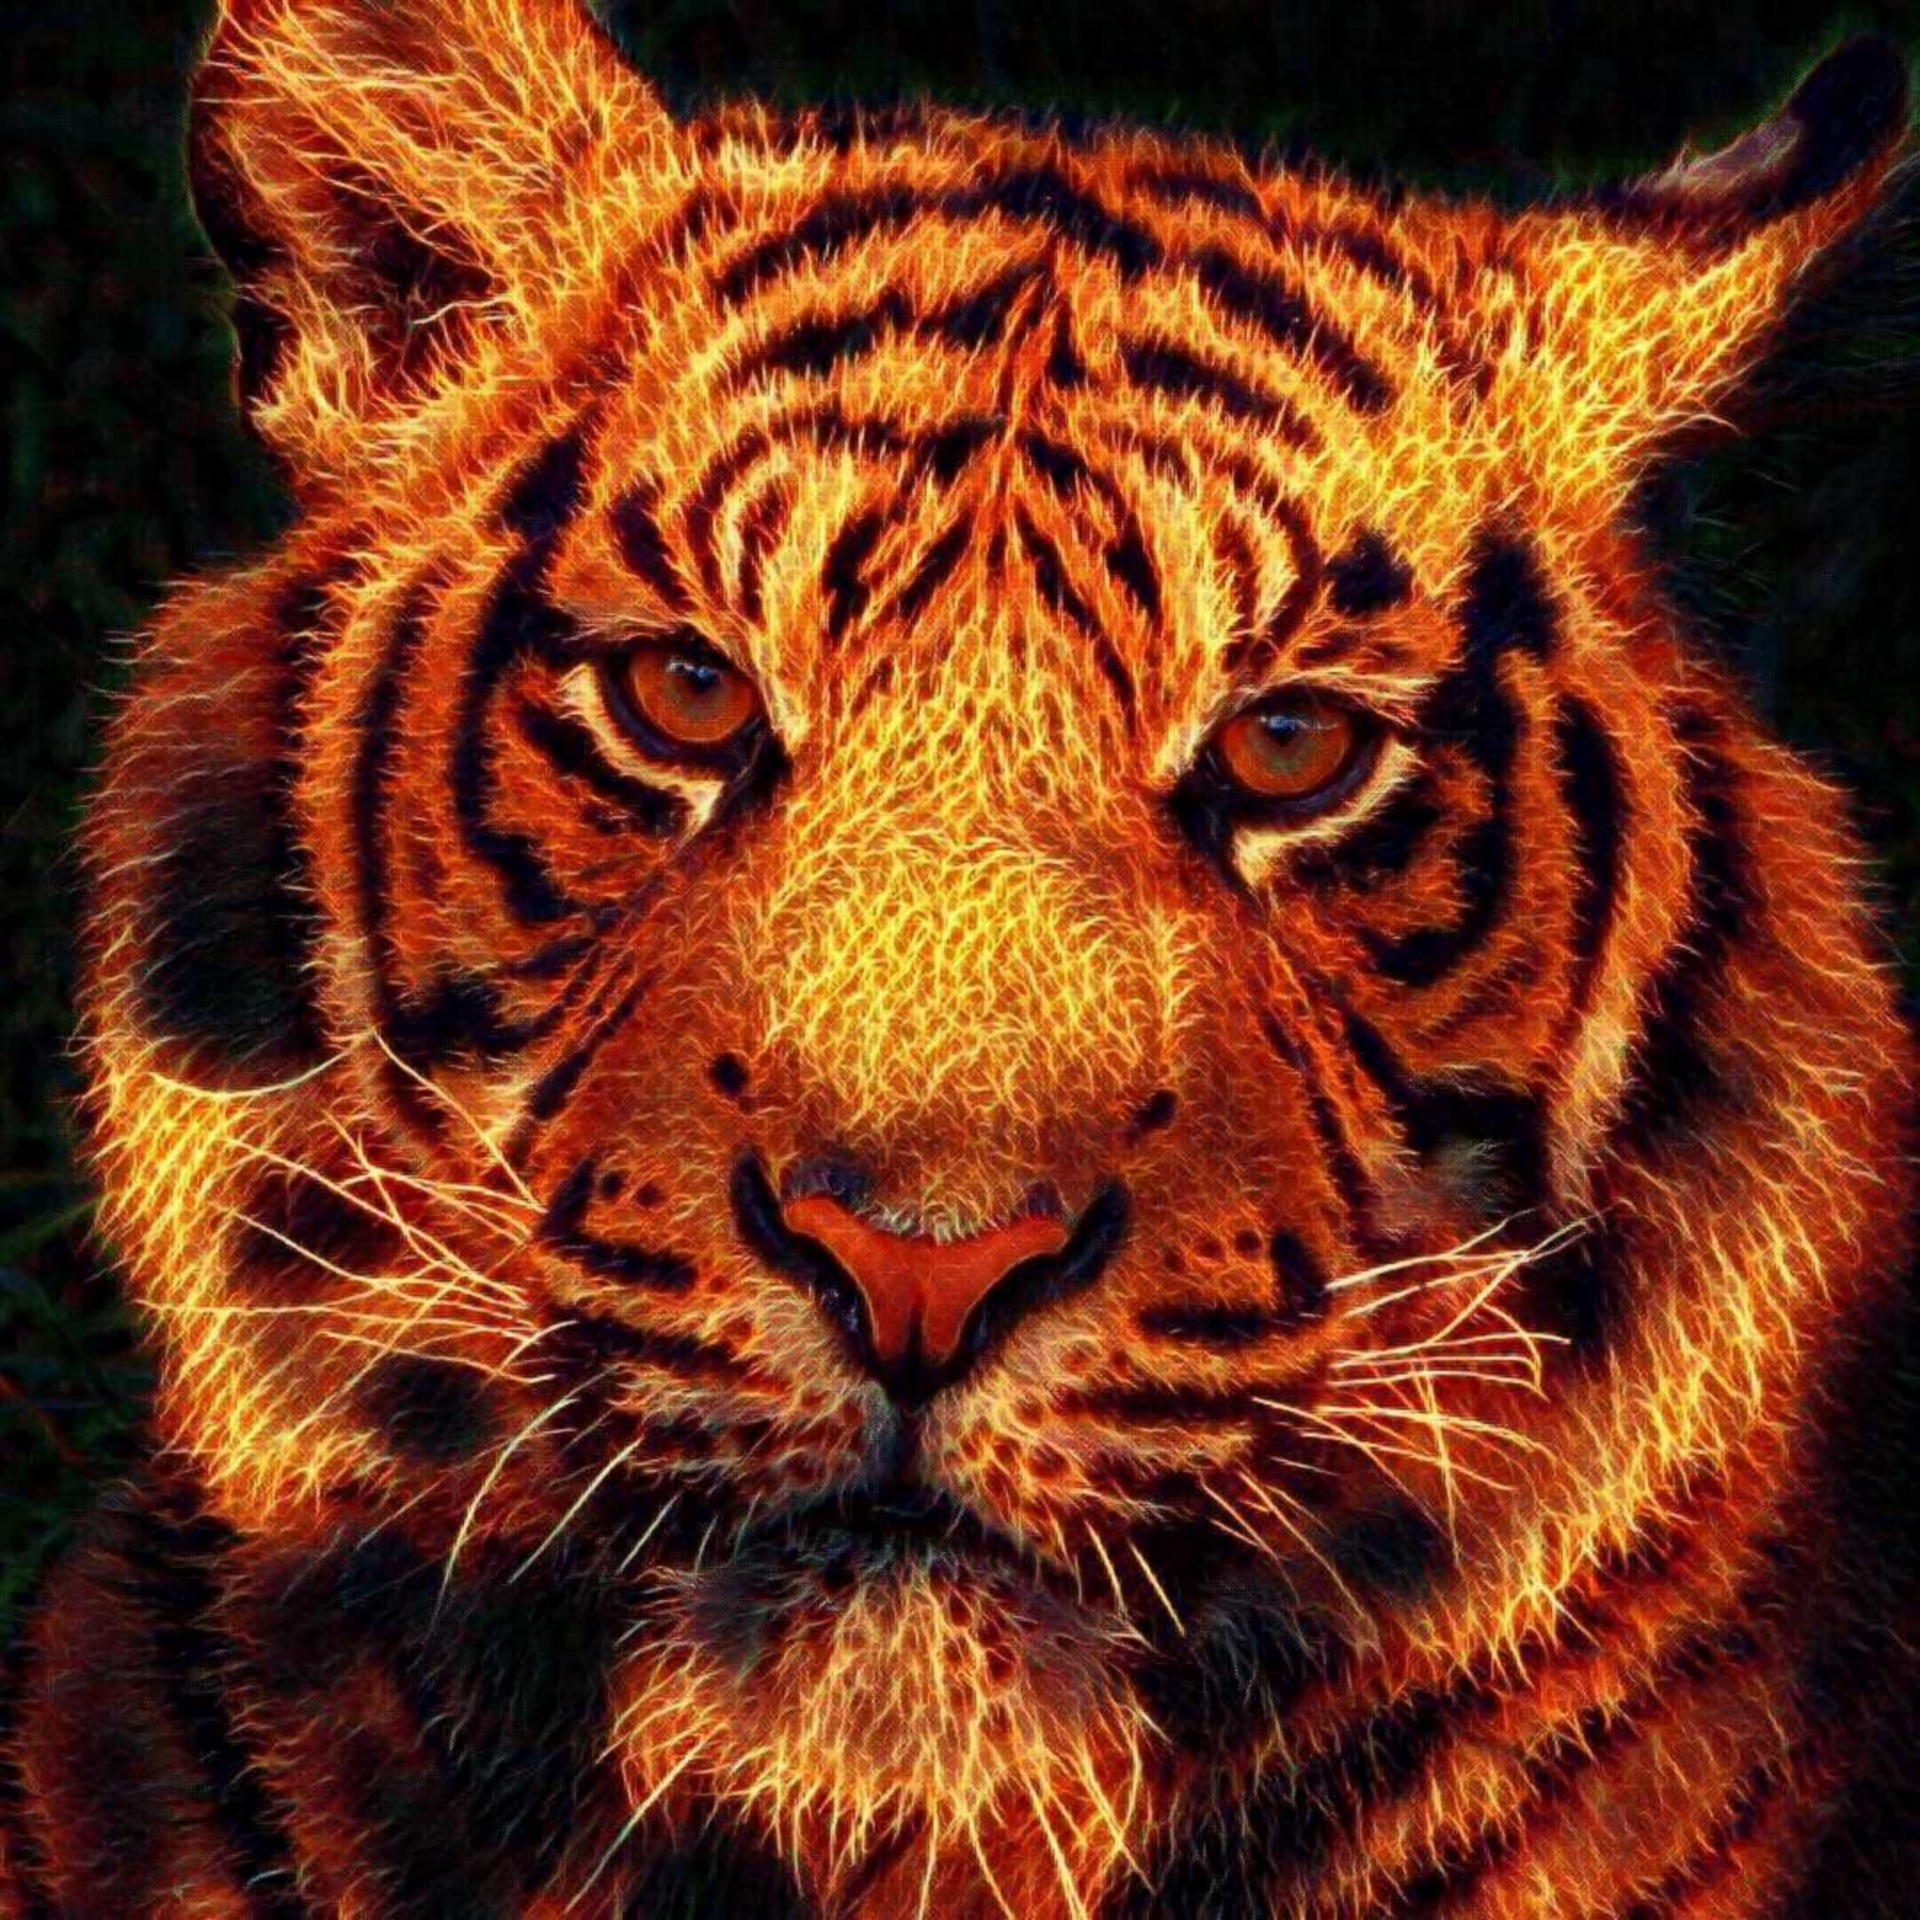 Free Animal Wallpaper Download Fire Tiger Free Stock Photo Public Domain Pictures